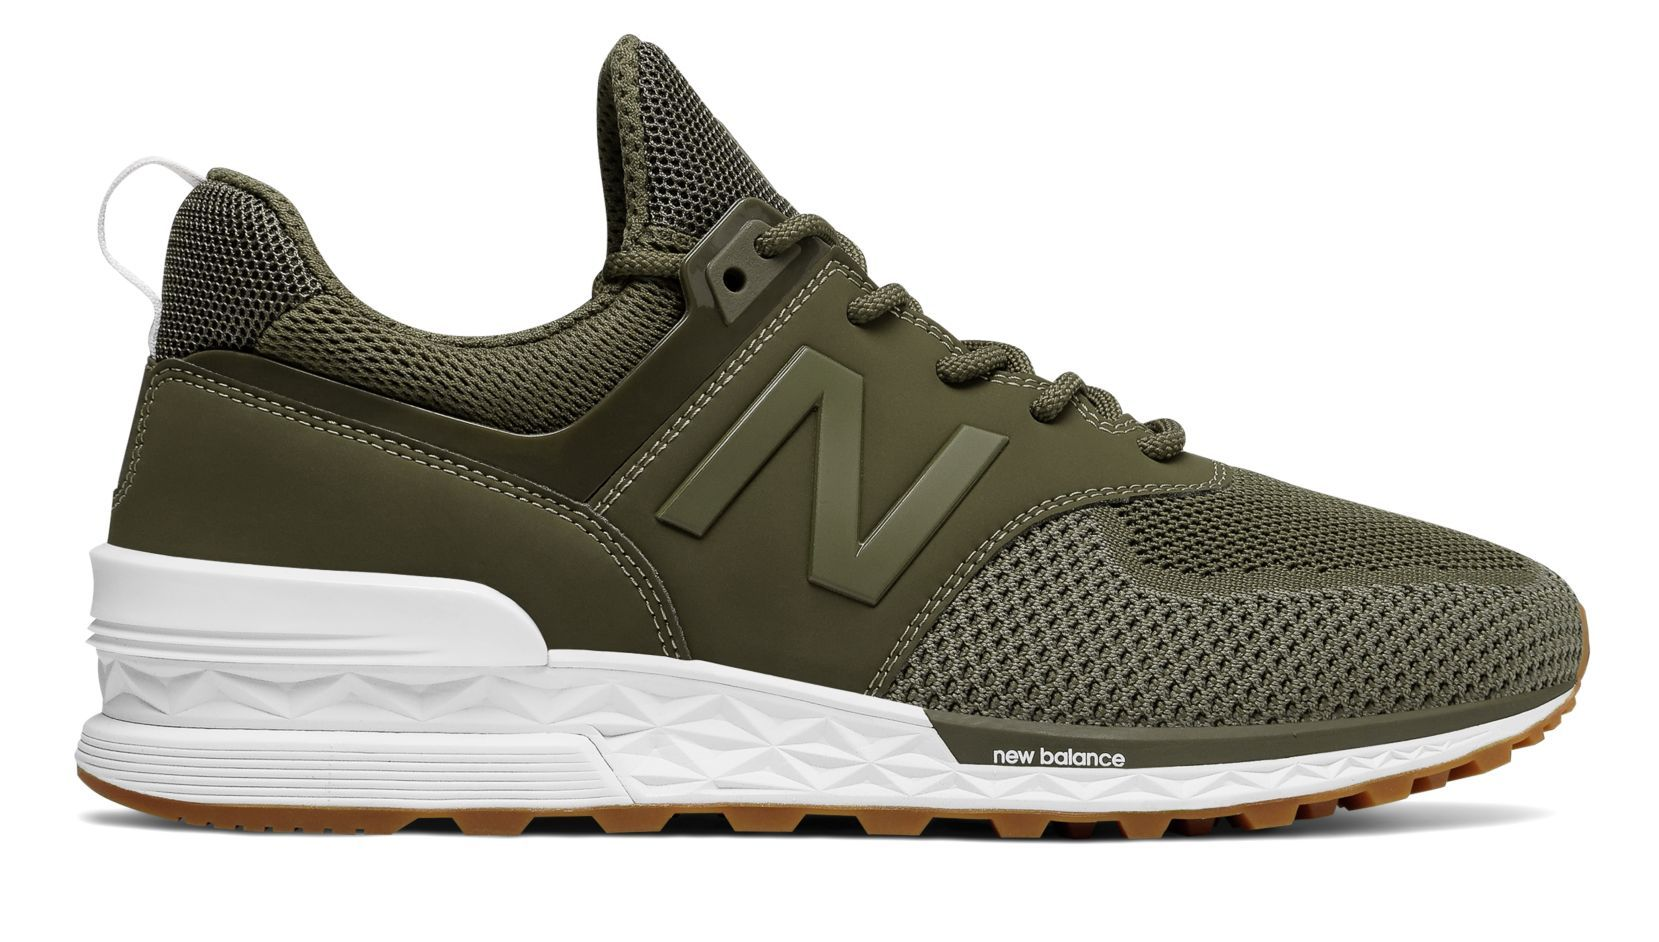 New Balance 574 Sport, Triumph Green with Covert | rags